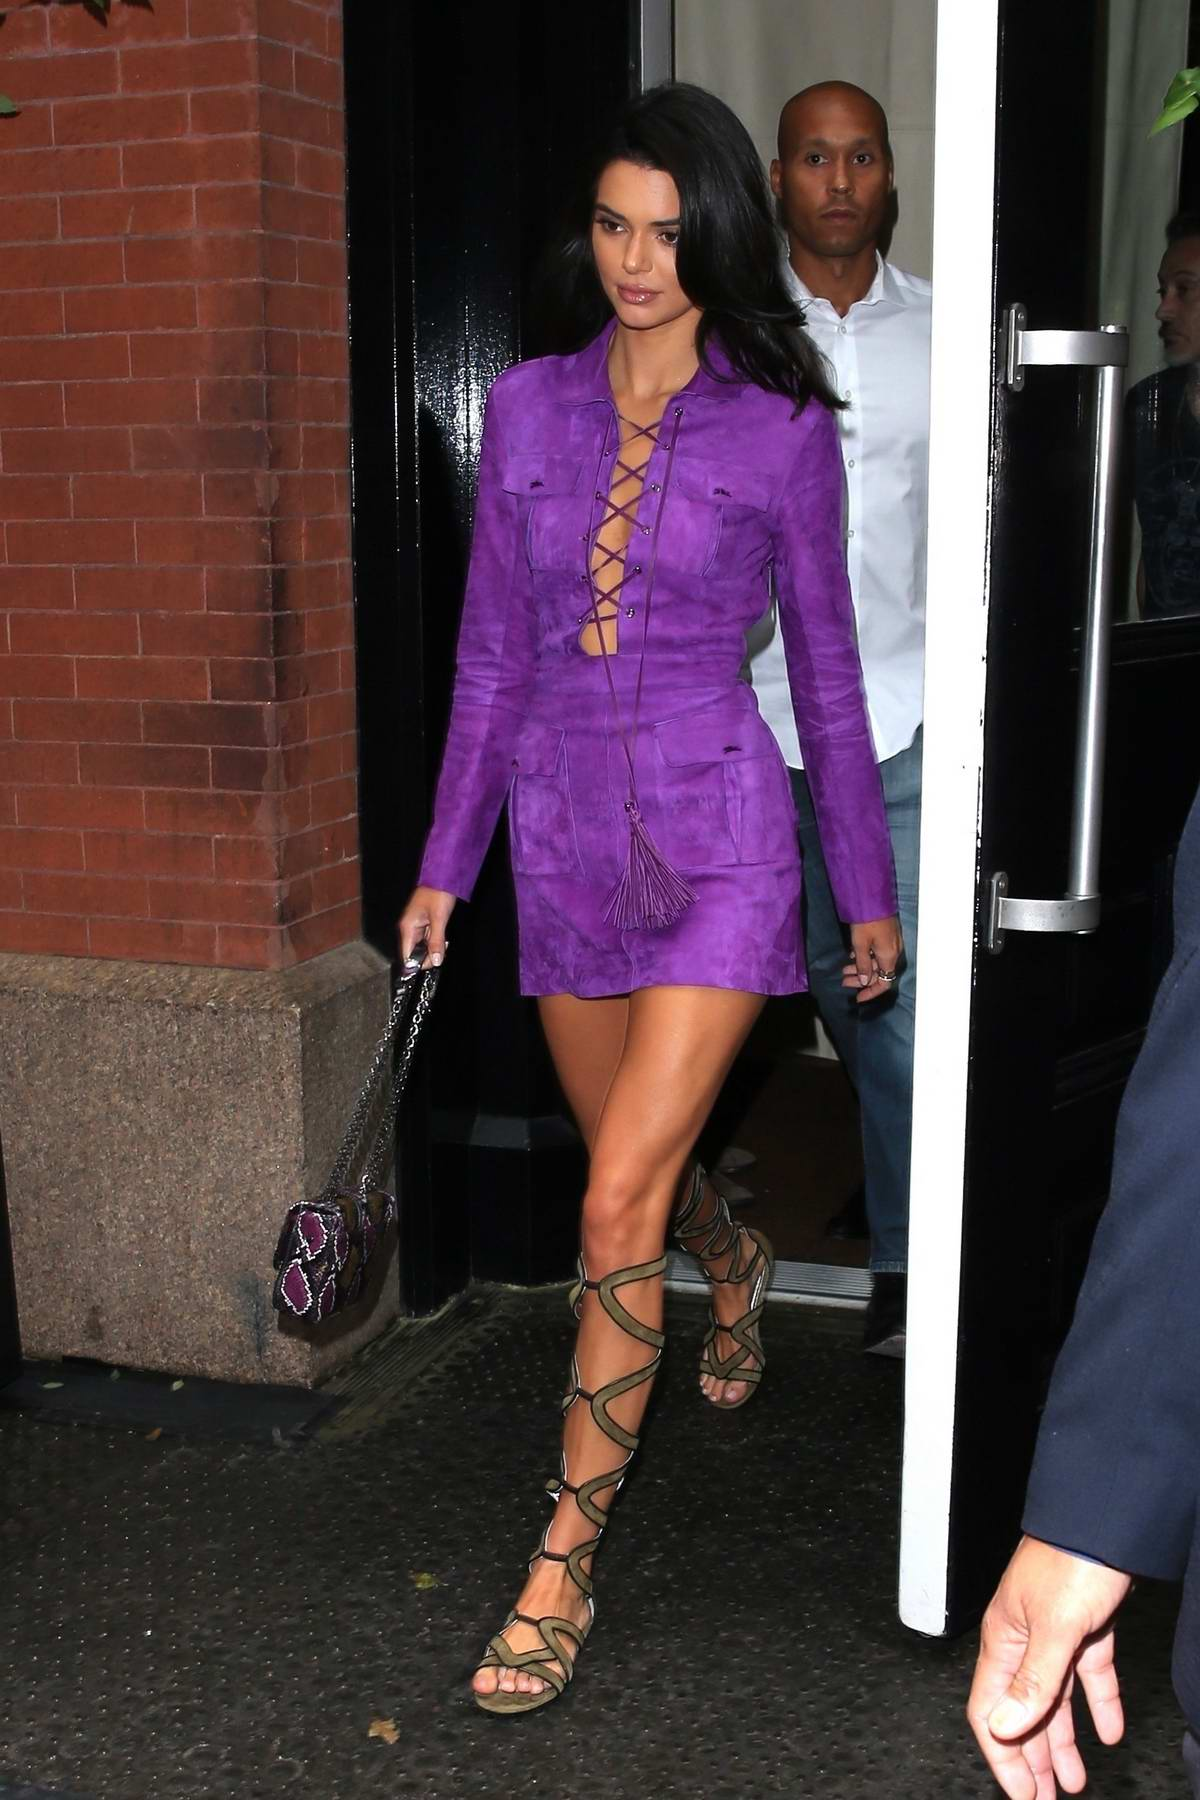 Kendall Jenner wears short purple outfit as she leaves The Mercer Hotel in Soho, New York City